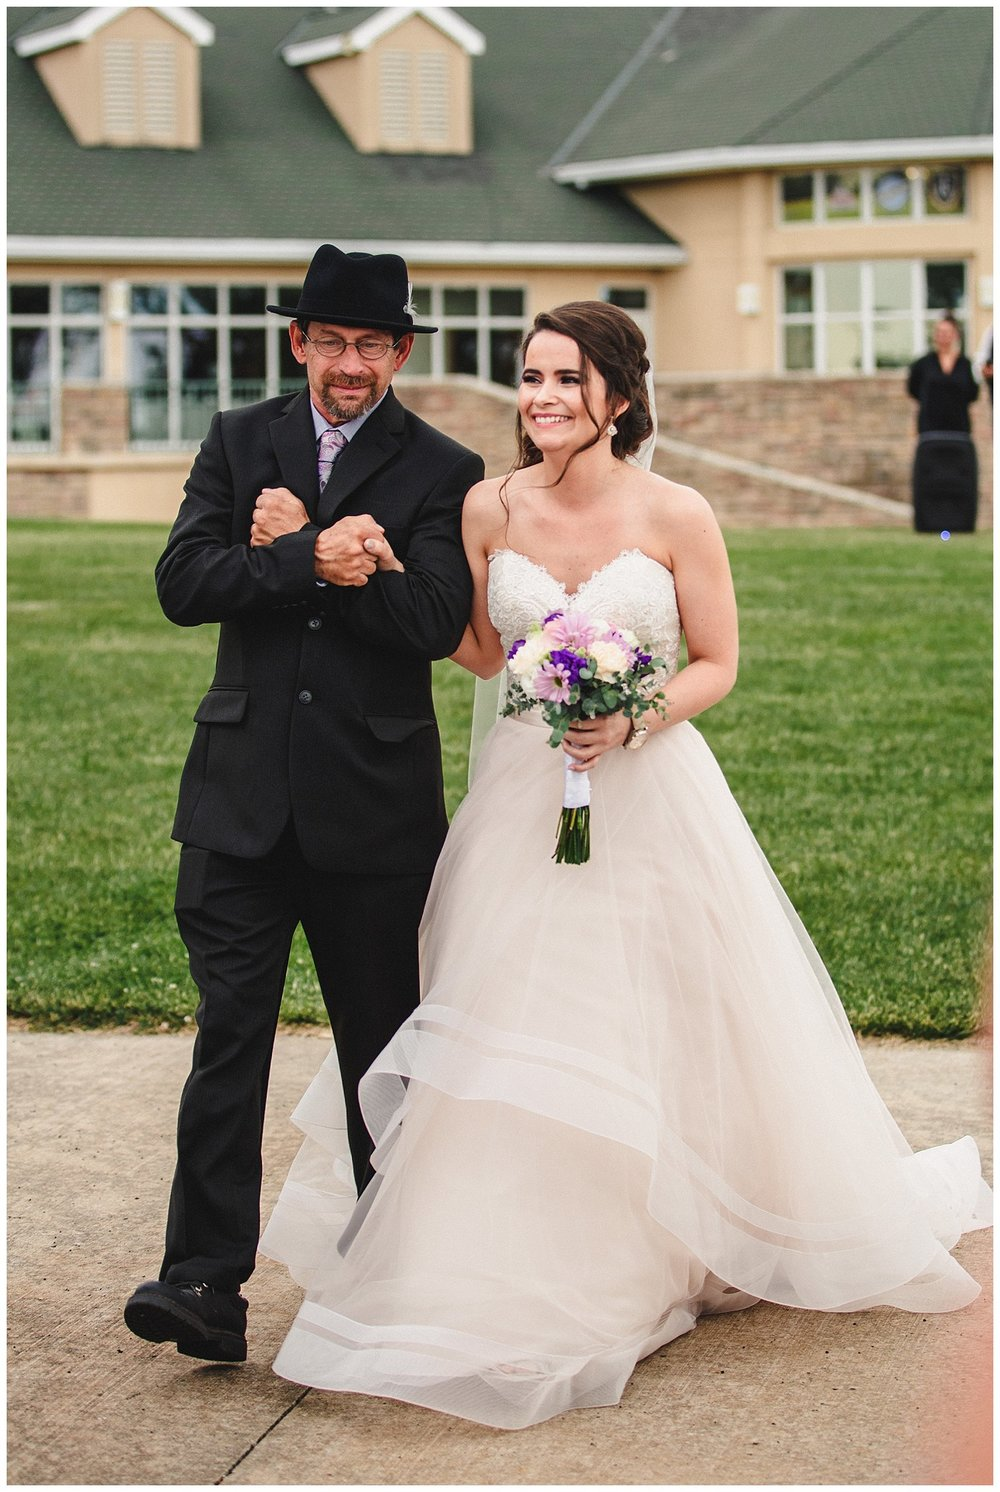 Tiffany_Greens_Golf_Club_Kansas_City_Wedding_Nikki_David_Spring_Wedding_Kelsey_Diane_Photography_0029.jpg